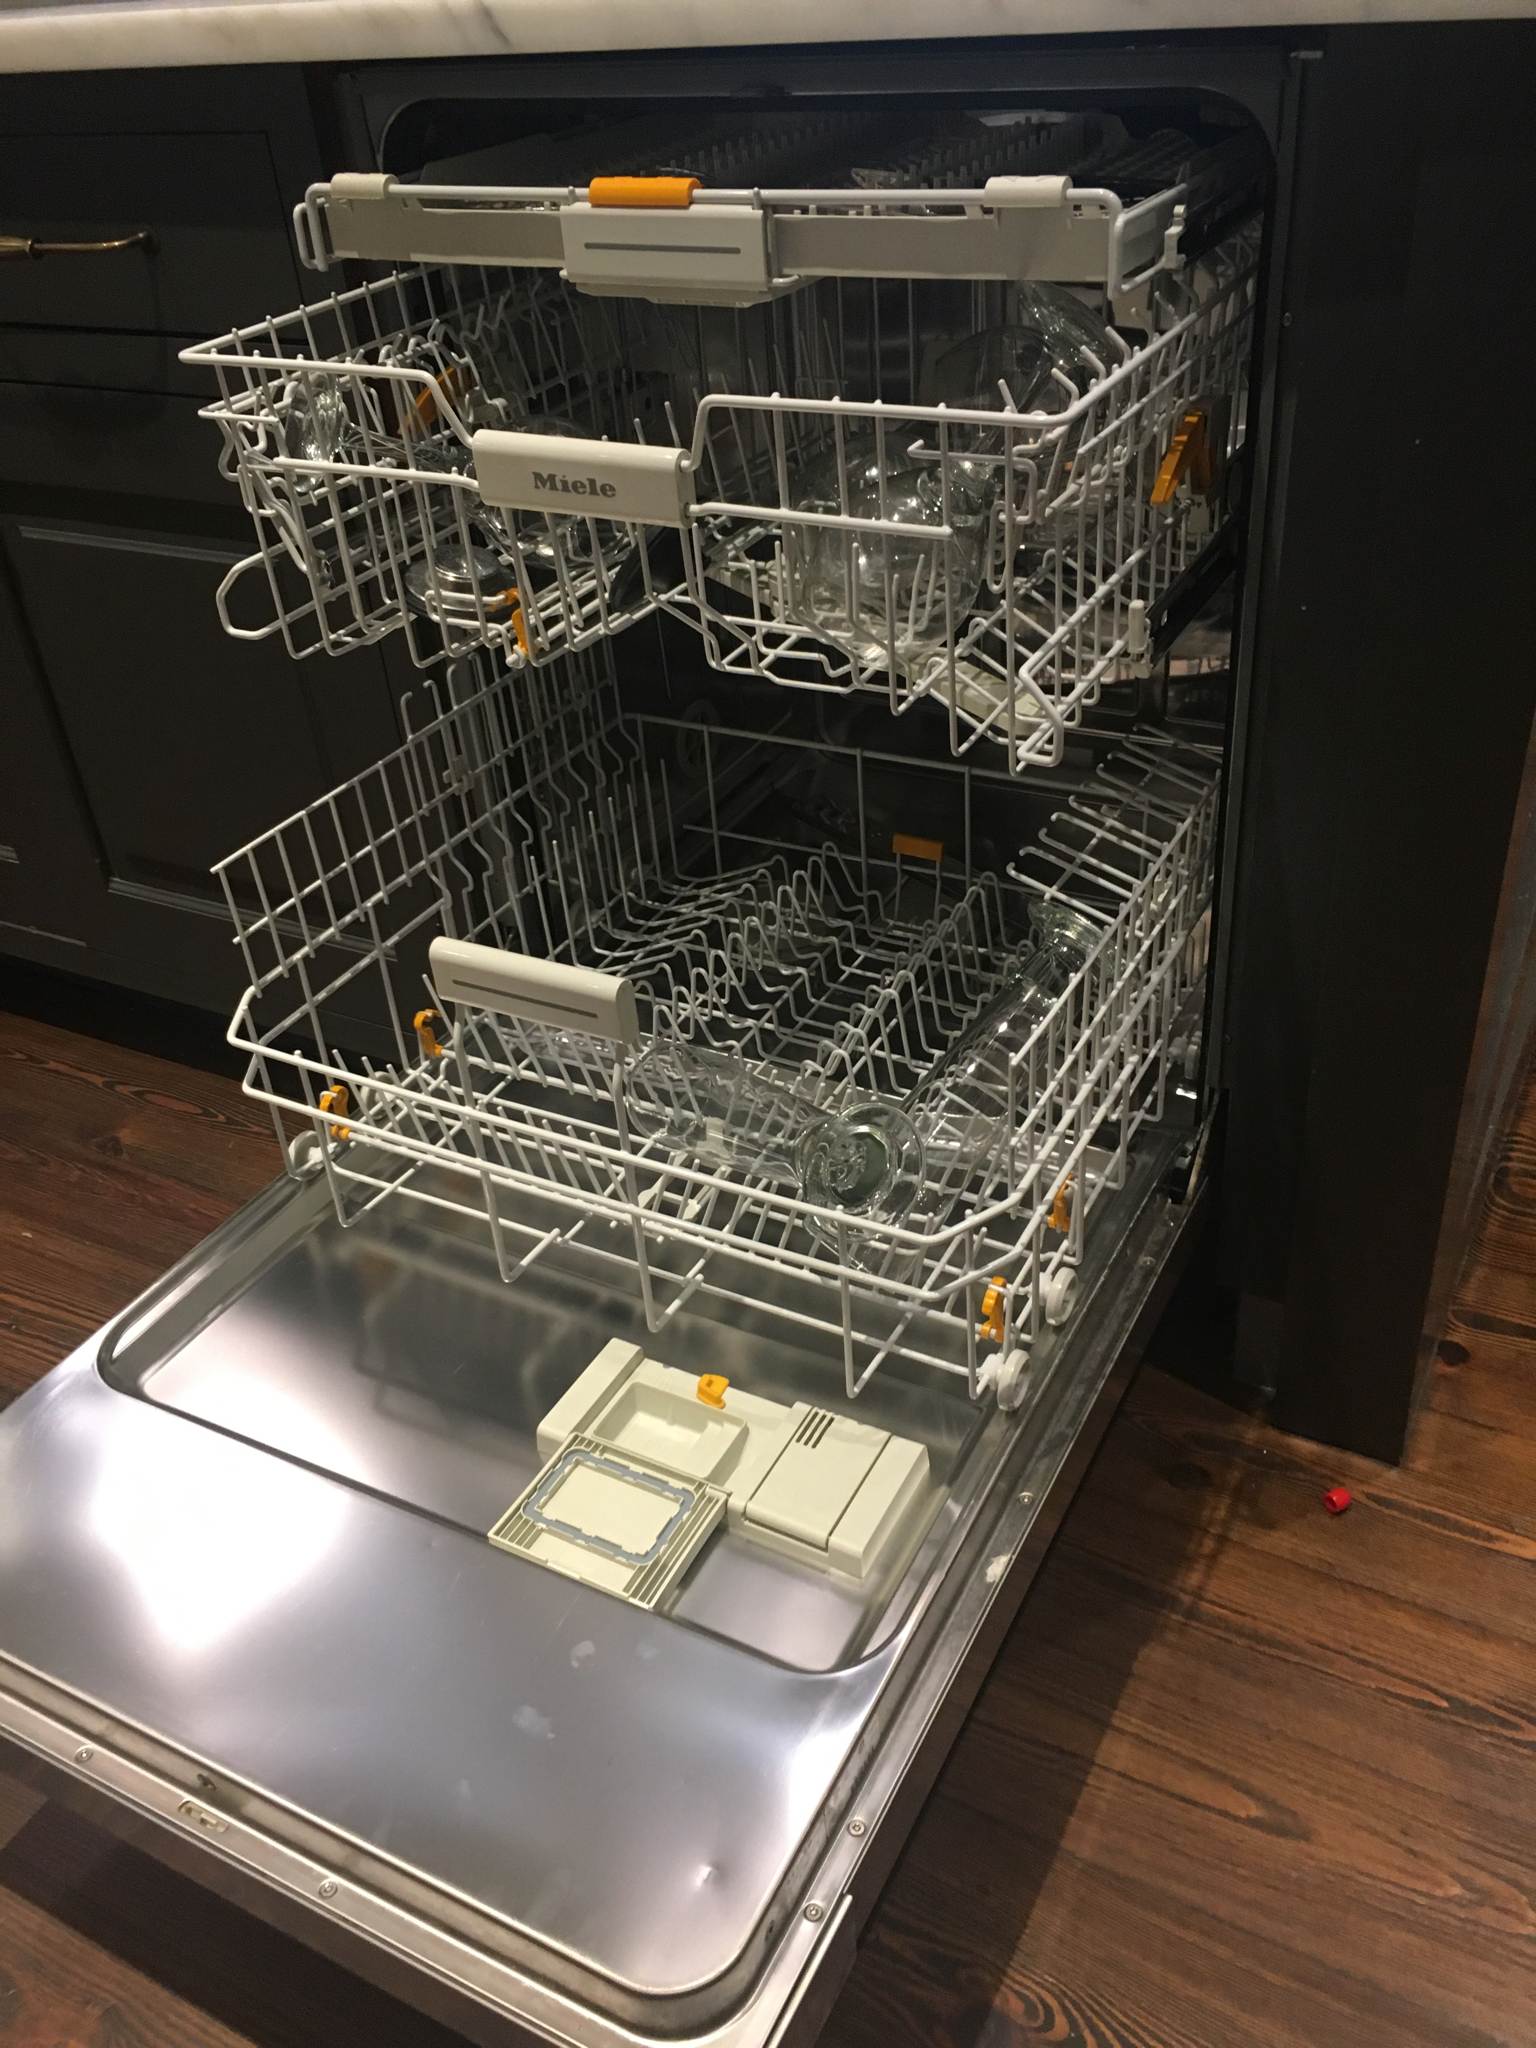 Miele Stainless Dishwasher